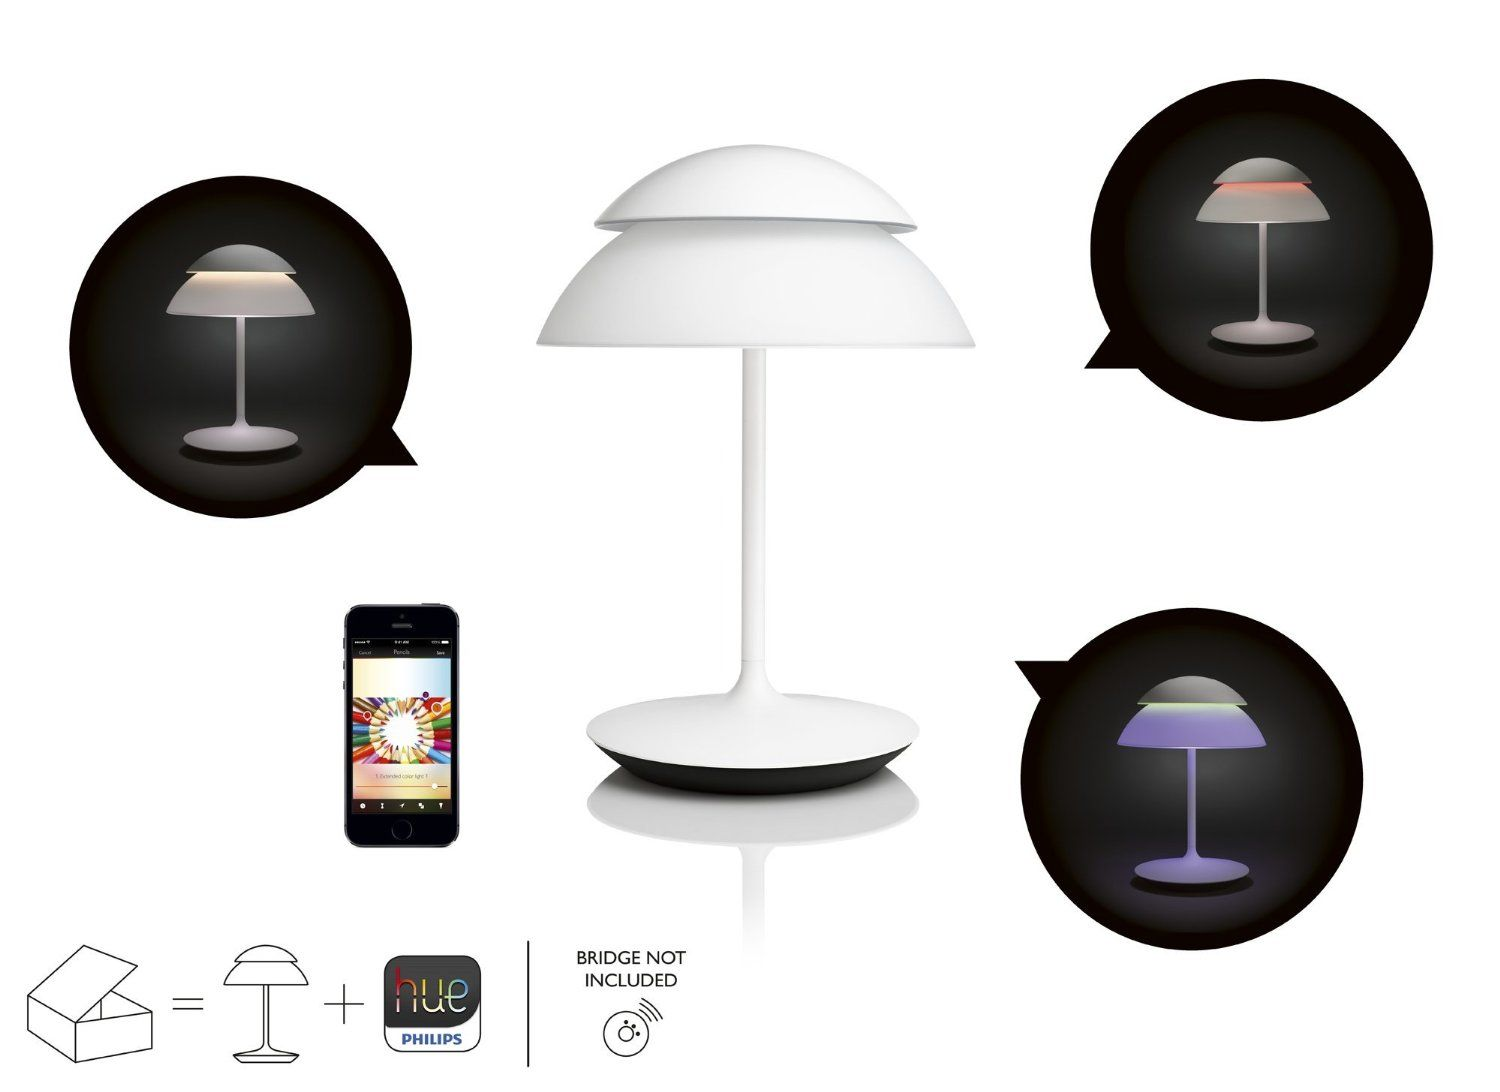 Philips Nastolna Lampa Beyond 7120231ph With Images Hue